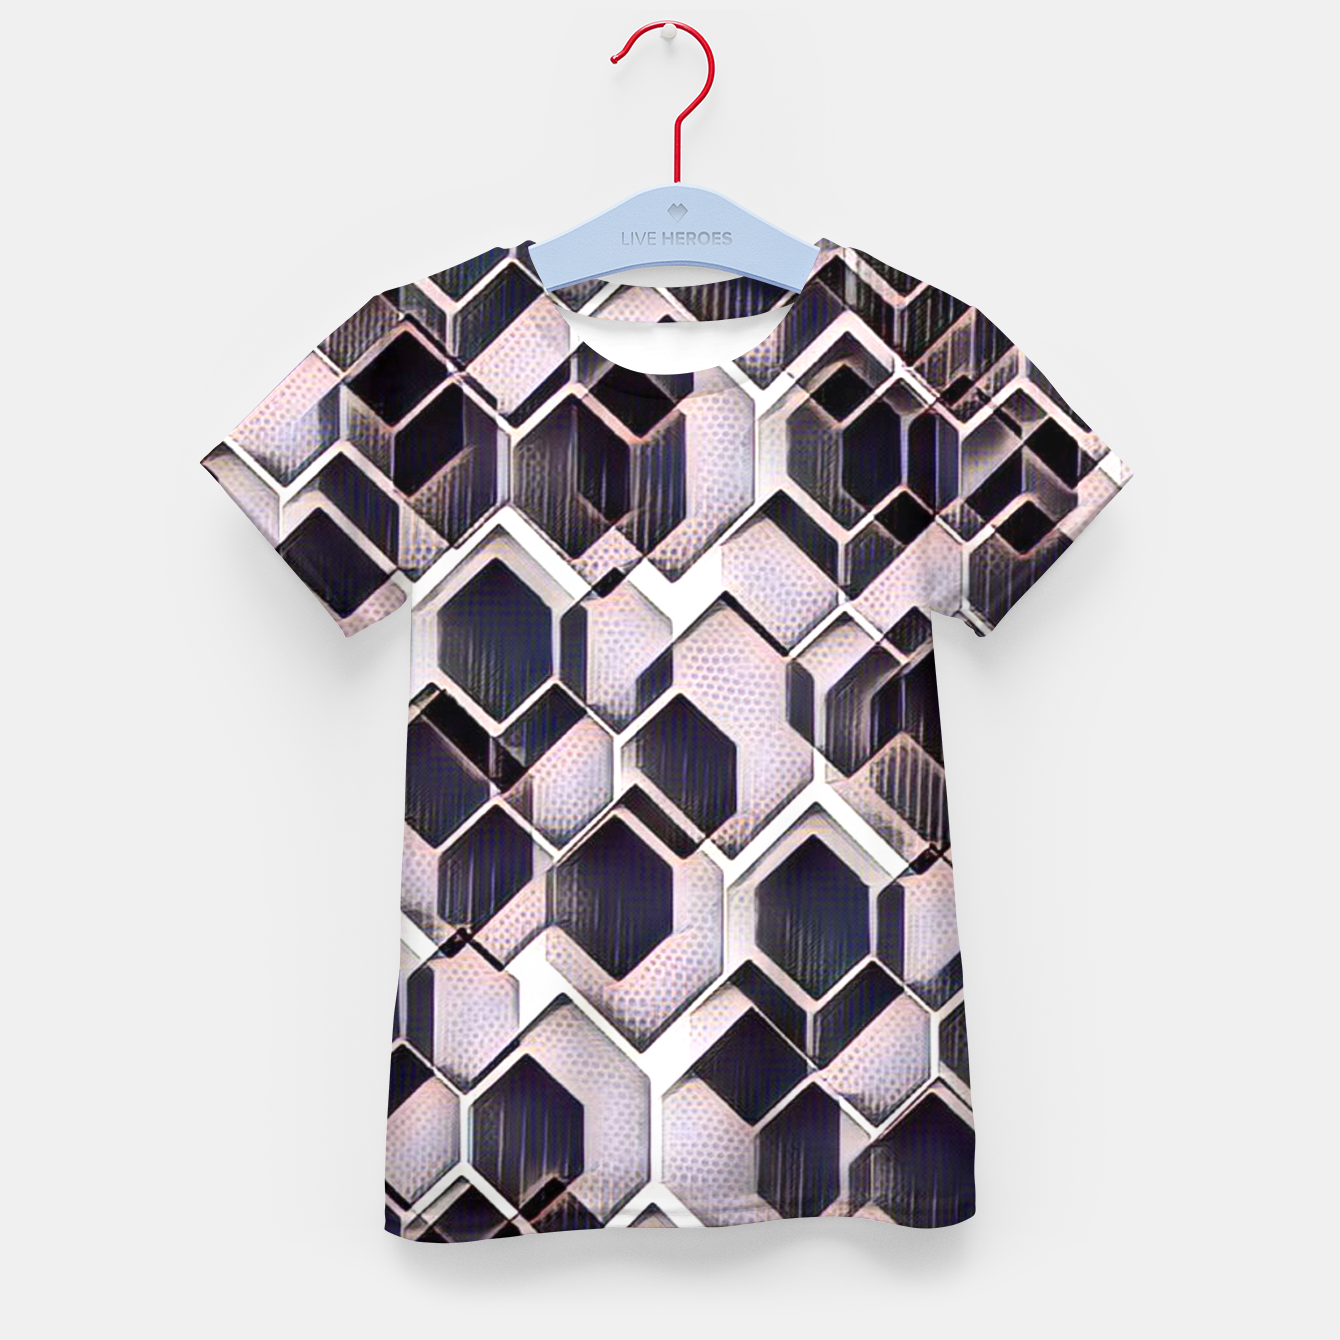 Foto blue grey purple black and white abstract geometric pattern Kid's t-shirt - Live Heroes